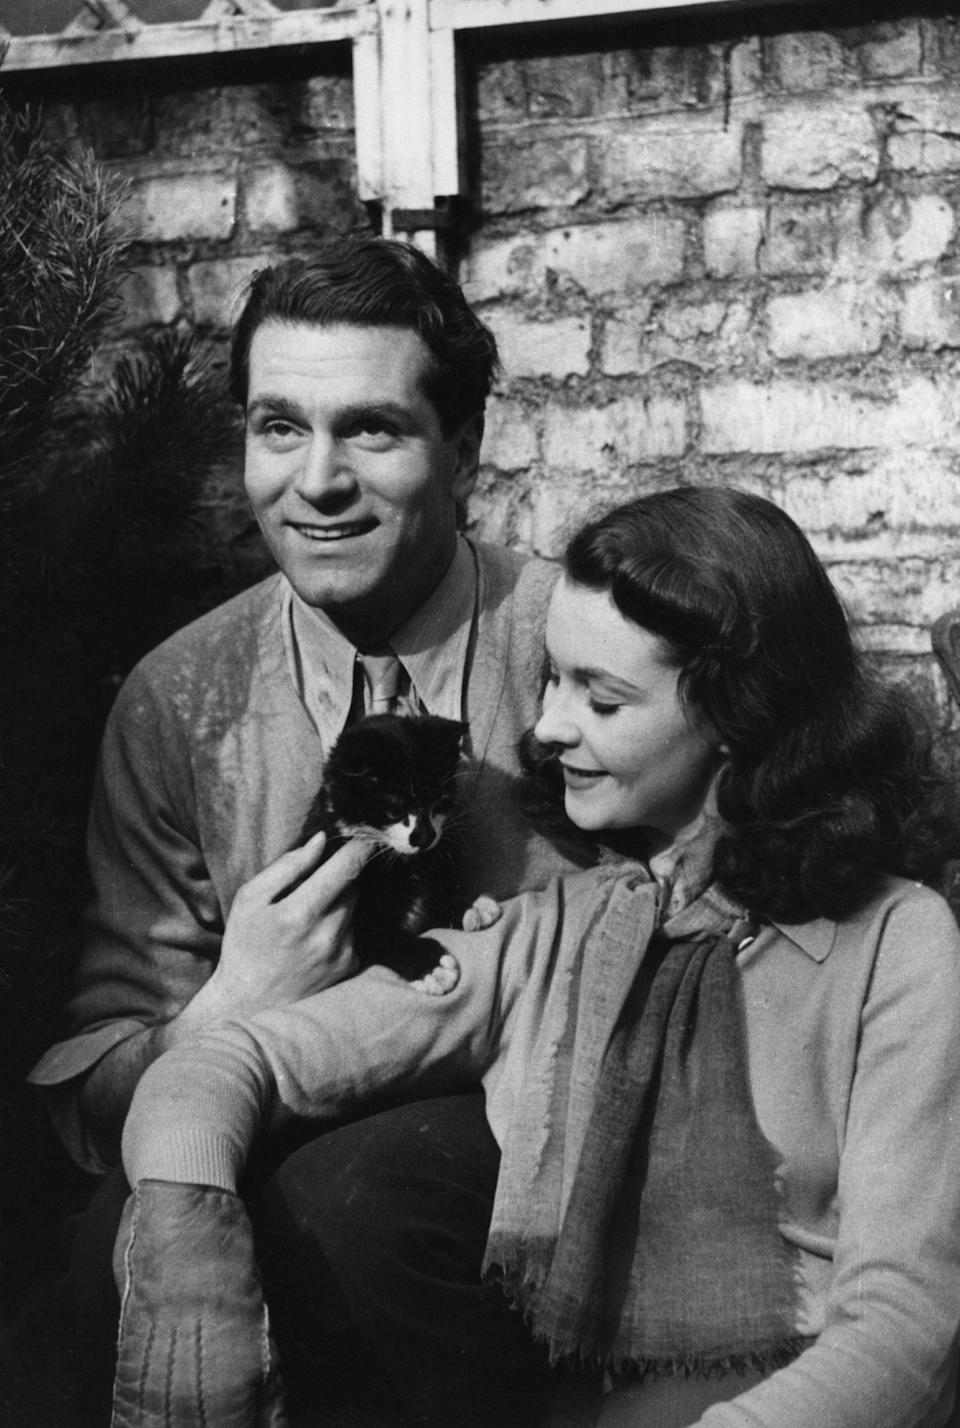 """<p>Leigh brought her fair share of scandal to set. The married (yep!) mother and actress was in the thick of an indiscreet love affair with Laurence Olivier, who was also married at the time. Following divorces from their spouses, <a rel=""""nofollow noopener"""" href=""""https://en.wikipedia.org/wiki/Vivien_Leigh#Marriage_and_early_joint_projects"""" target=""""_blank"""" data-ylk=""""slk:the two wed in 1940"""" class=""""link rapid-noclick-resp"""">the two wed in 1940</a>, a year after <em>Gone with the Wind</em> premiered. Katharine Hepburn was one of the four people to attend the small Santa Barbara, California ceremony.</p>"""